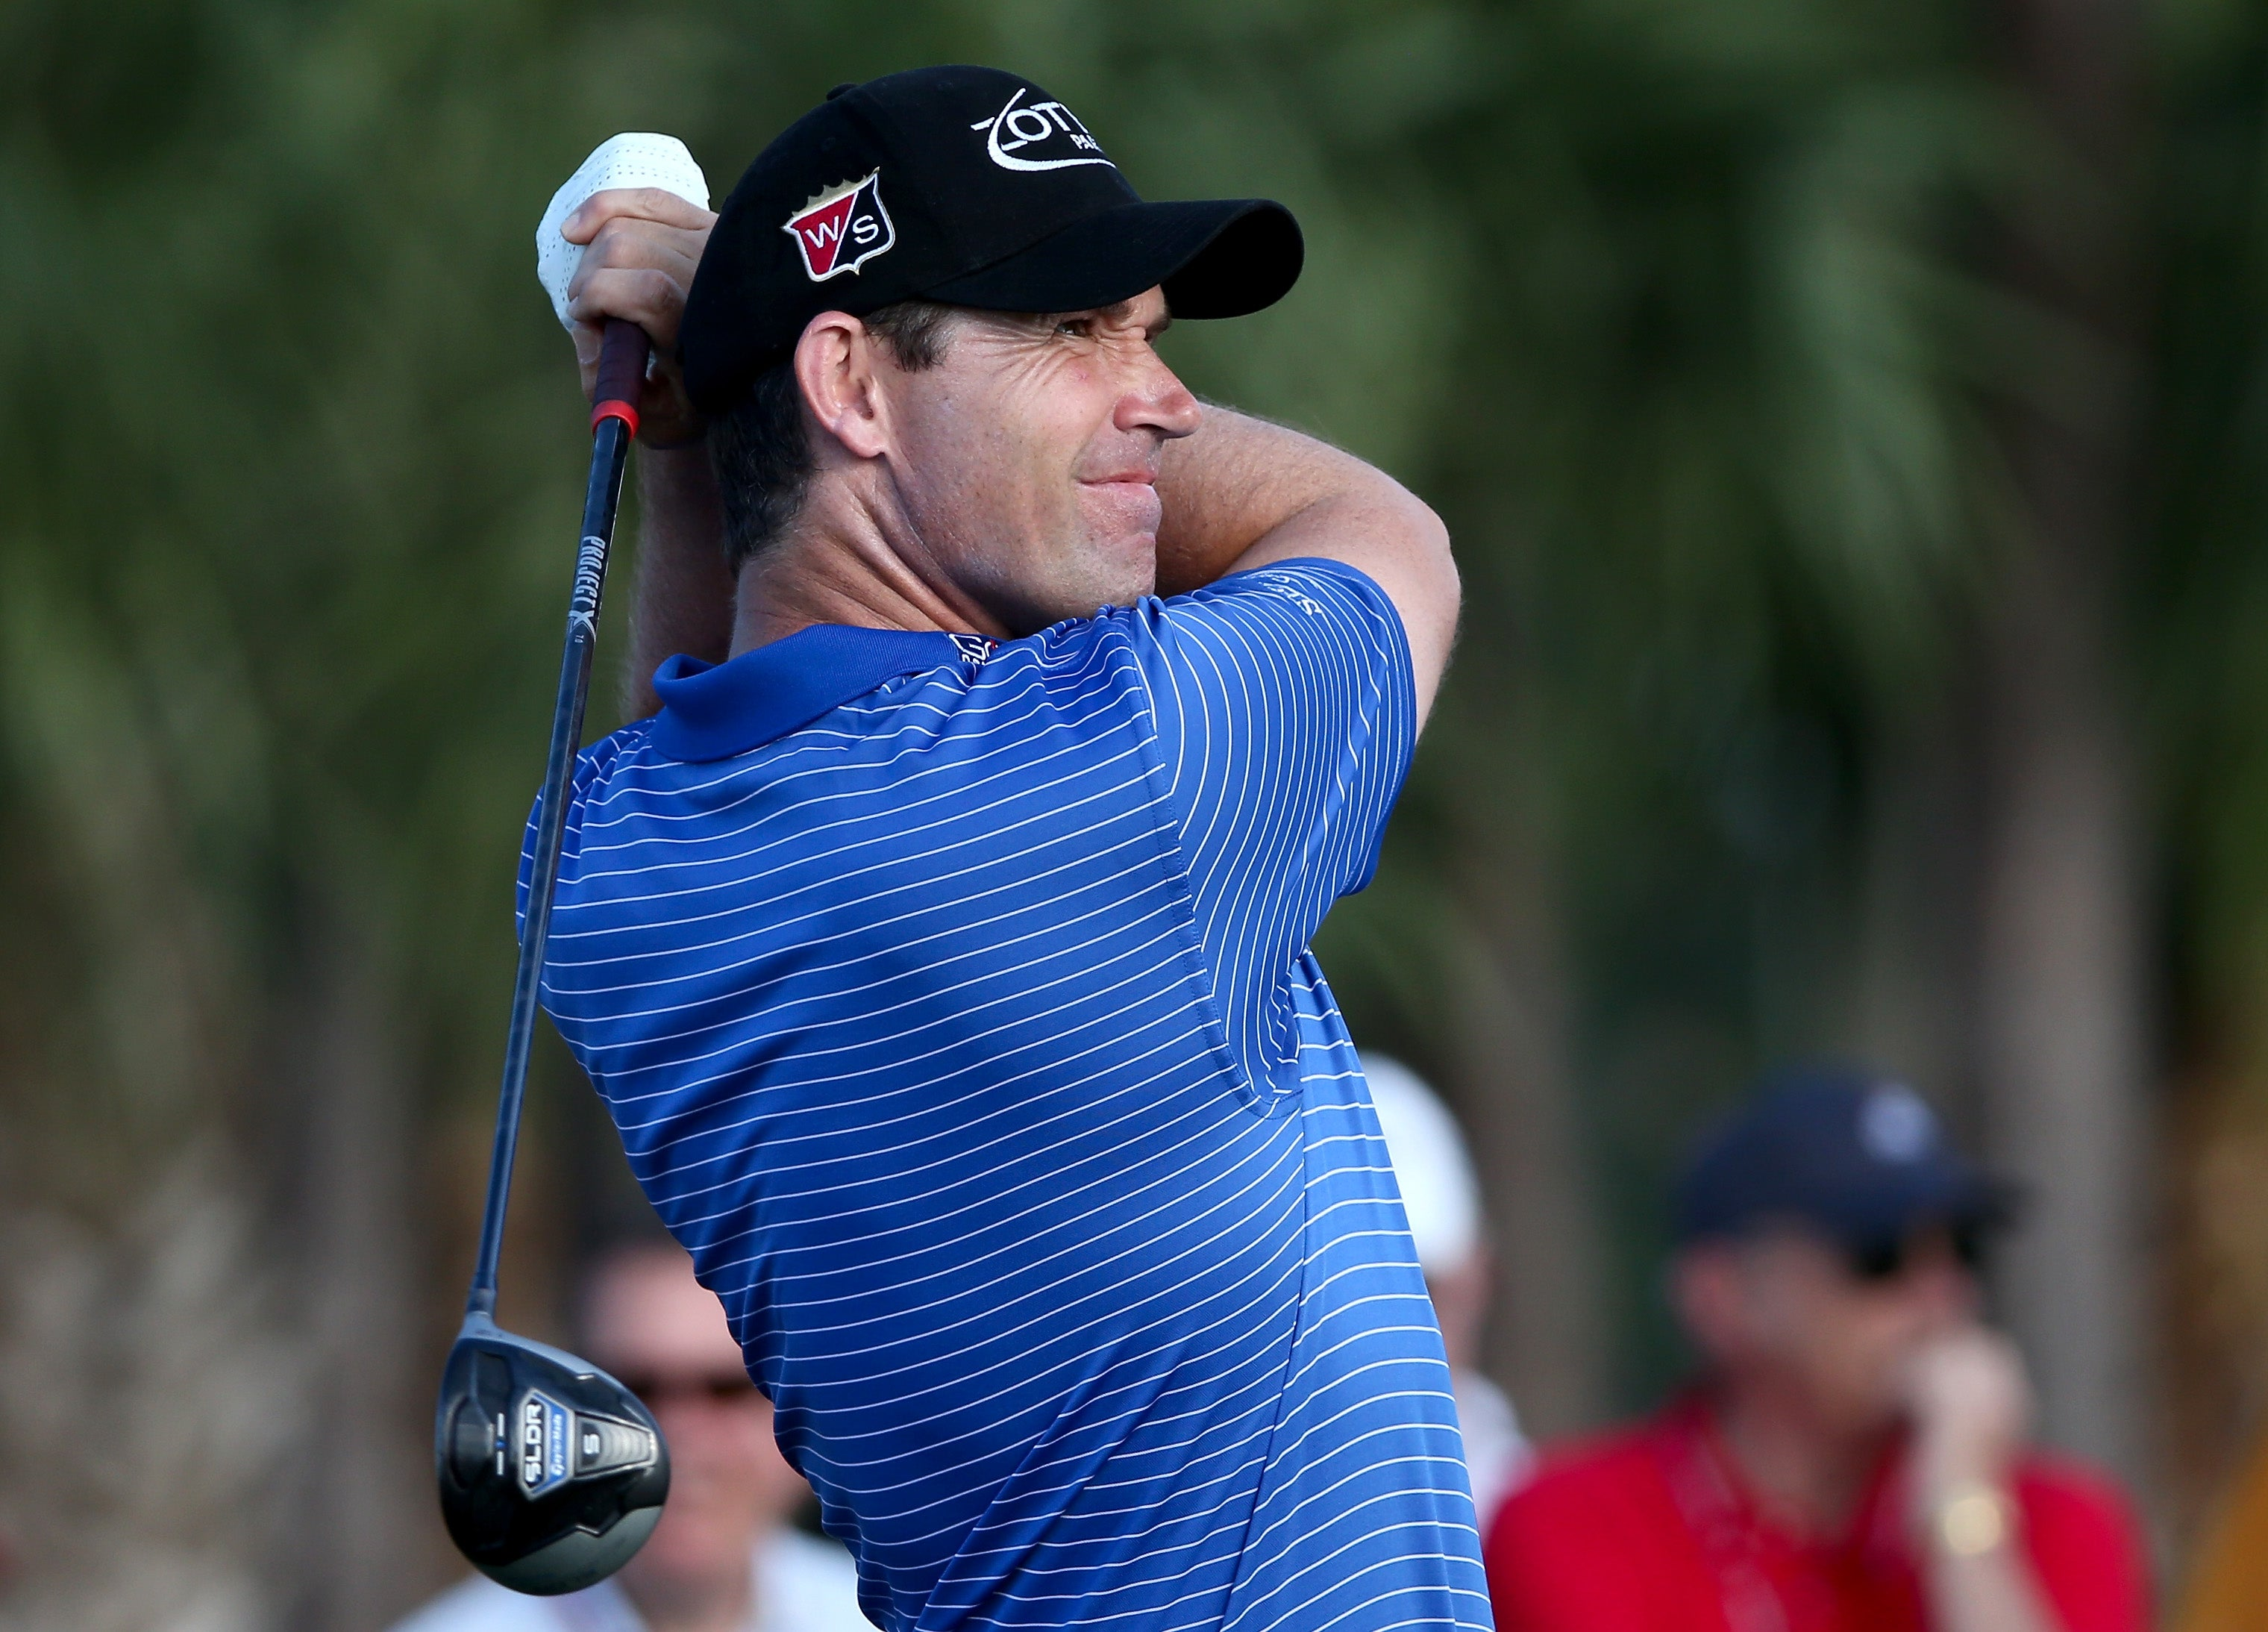 Padraig Harrington.jpg